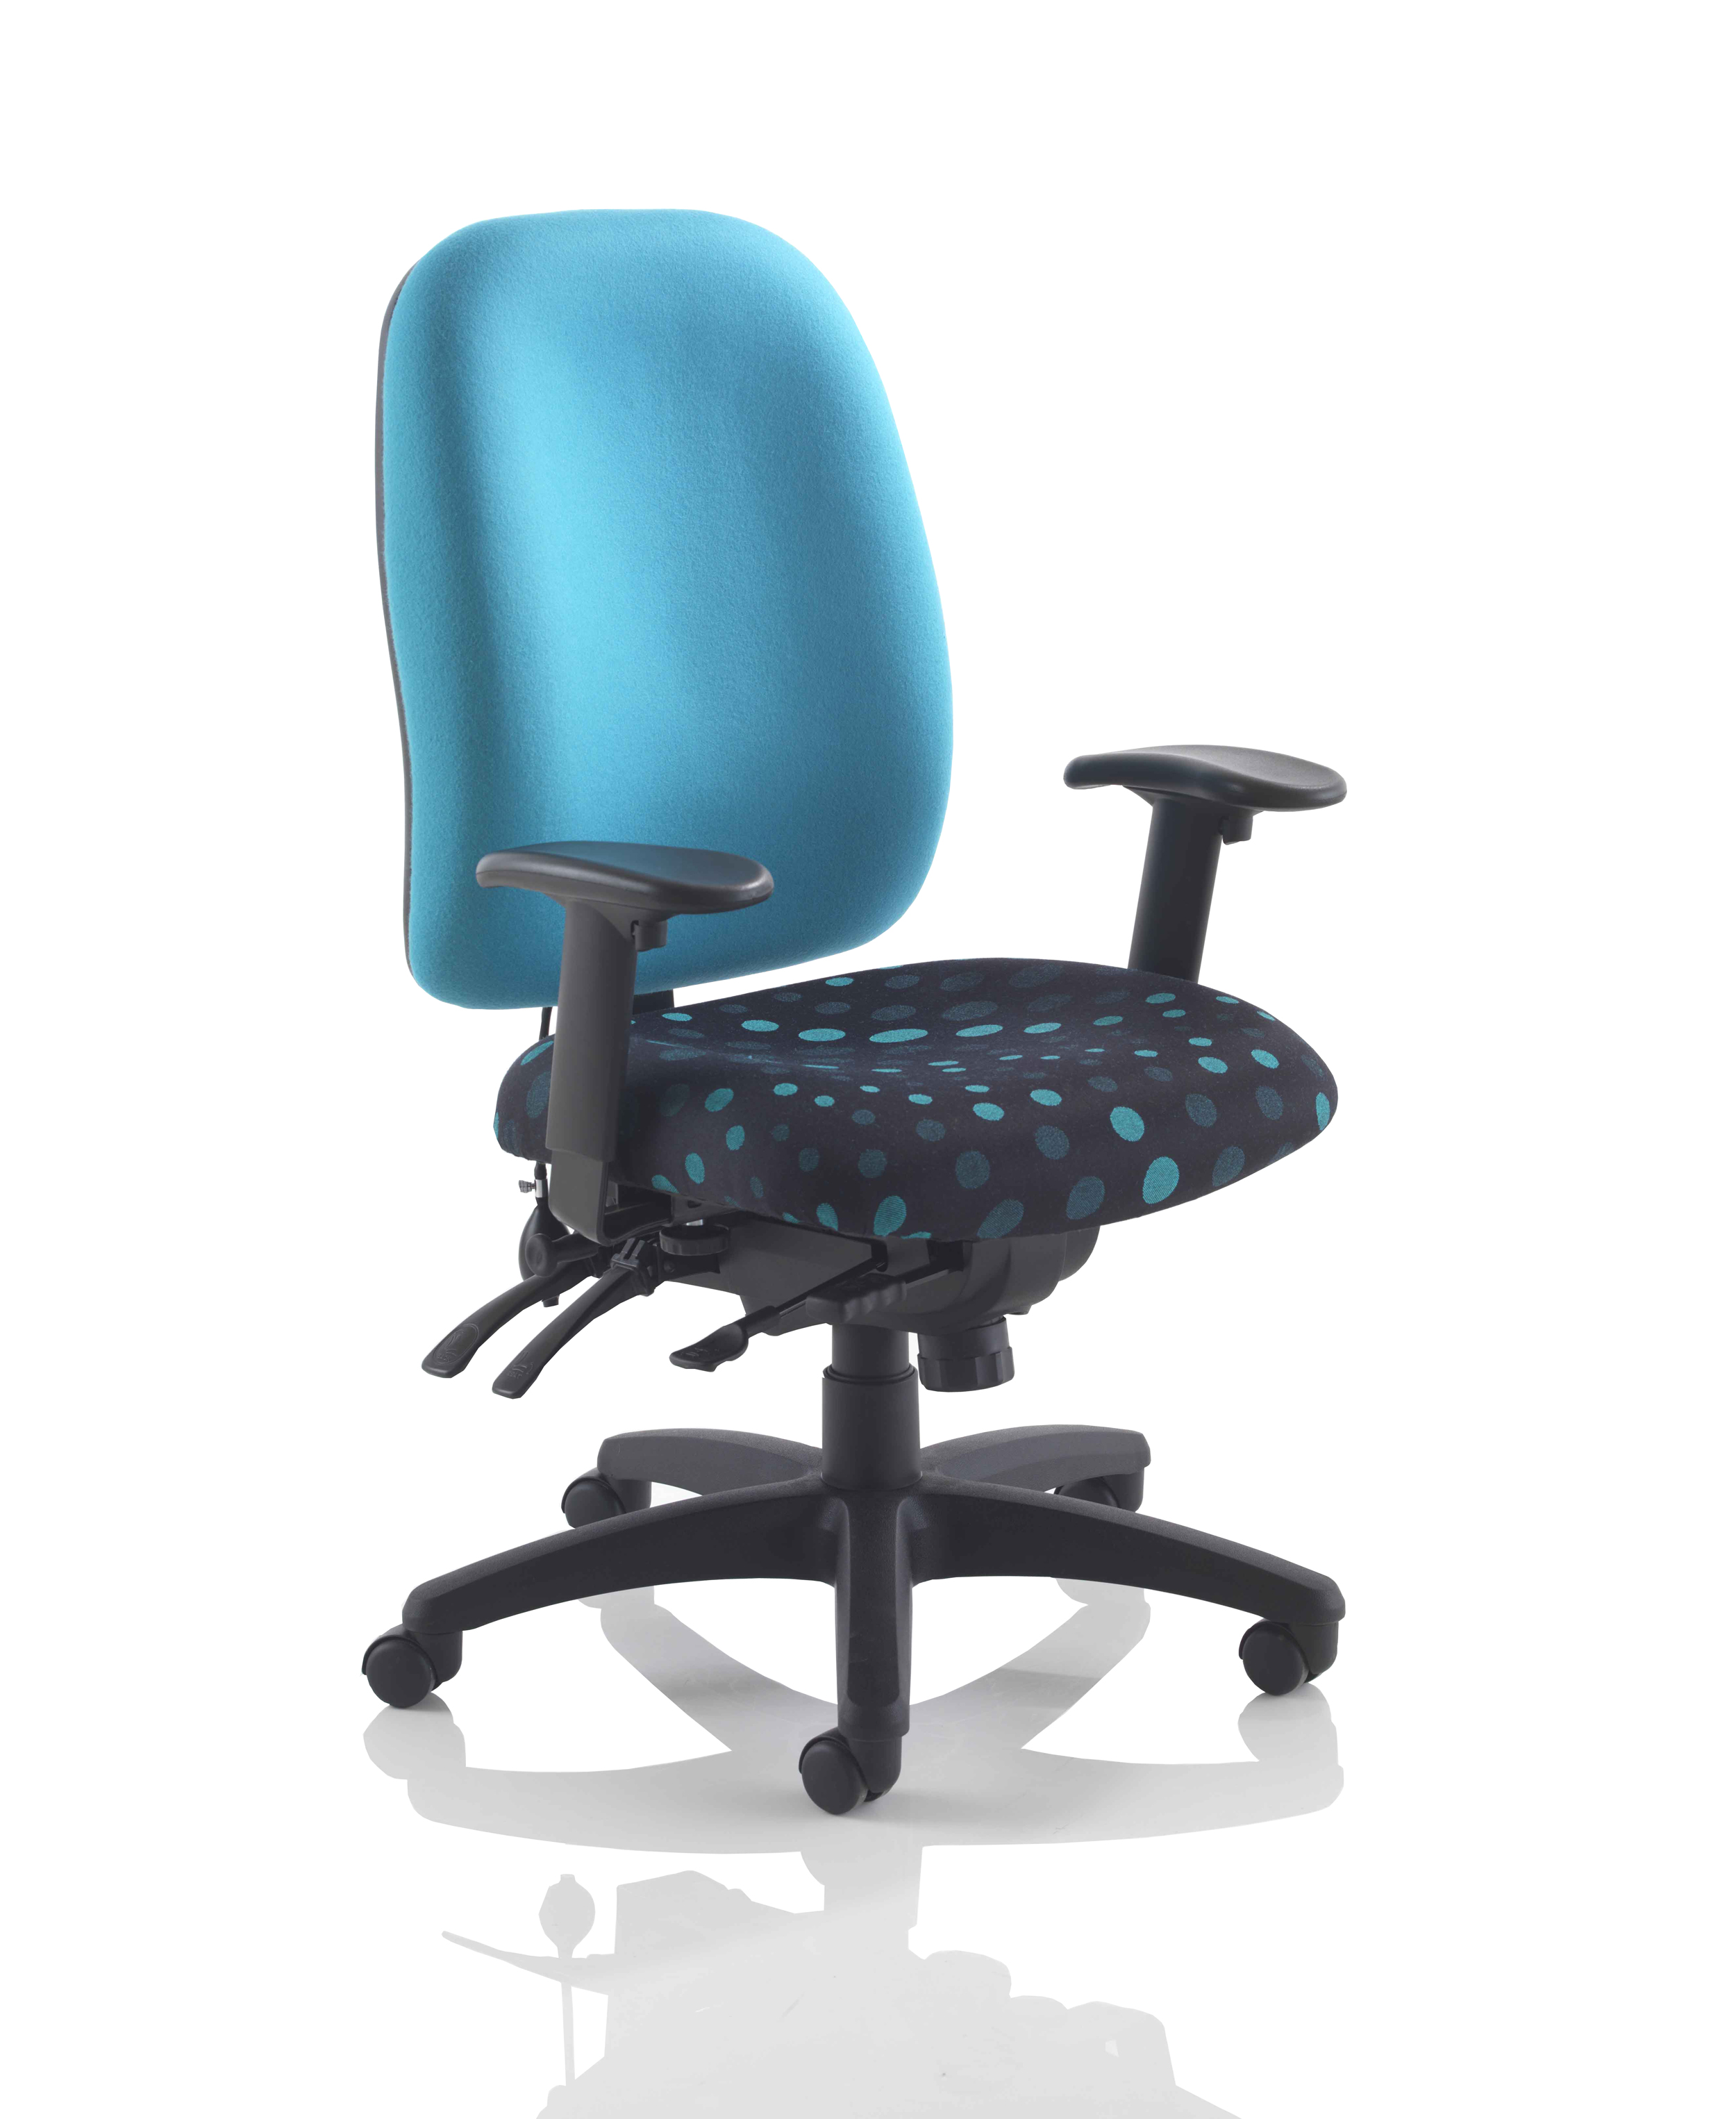 STELLAR POSTURE WITH HEIGHT ADJUSTABLE ARMS